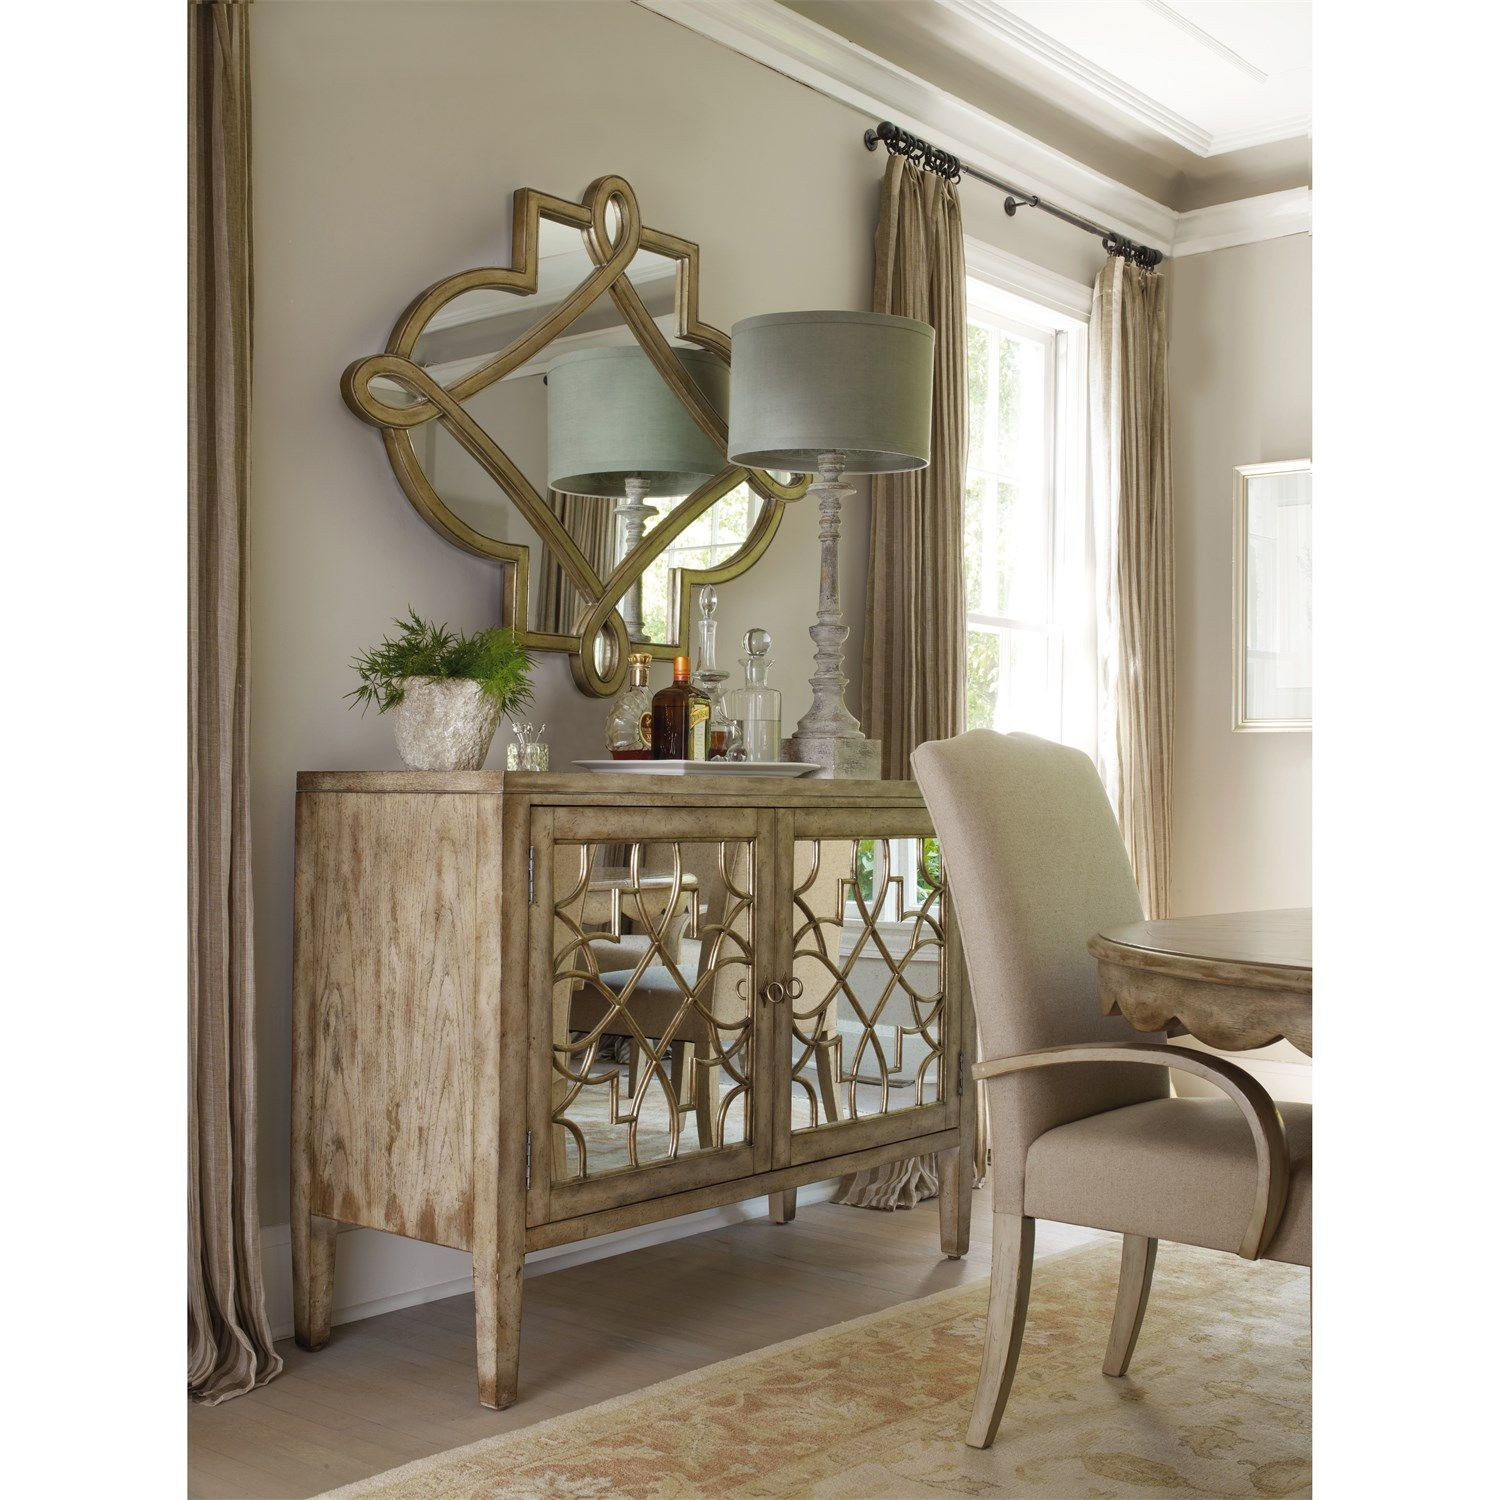 Good Hooker Furniture 3013 85002 Sanctuary Two Door Mirrored Console In Surf  Visage